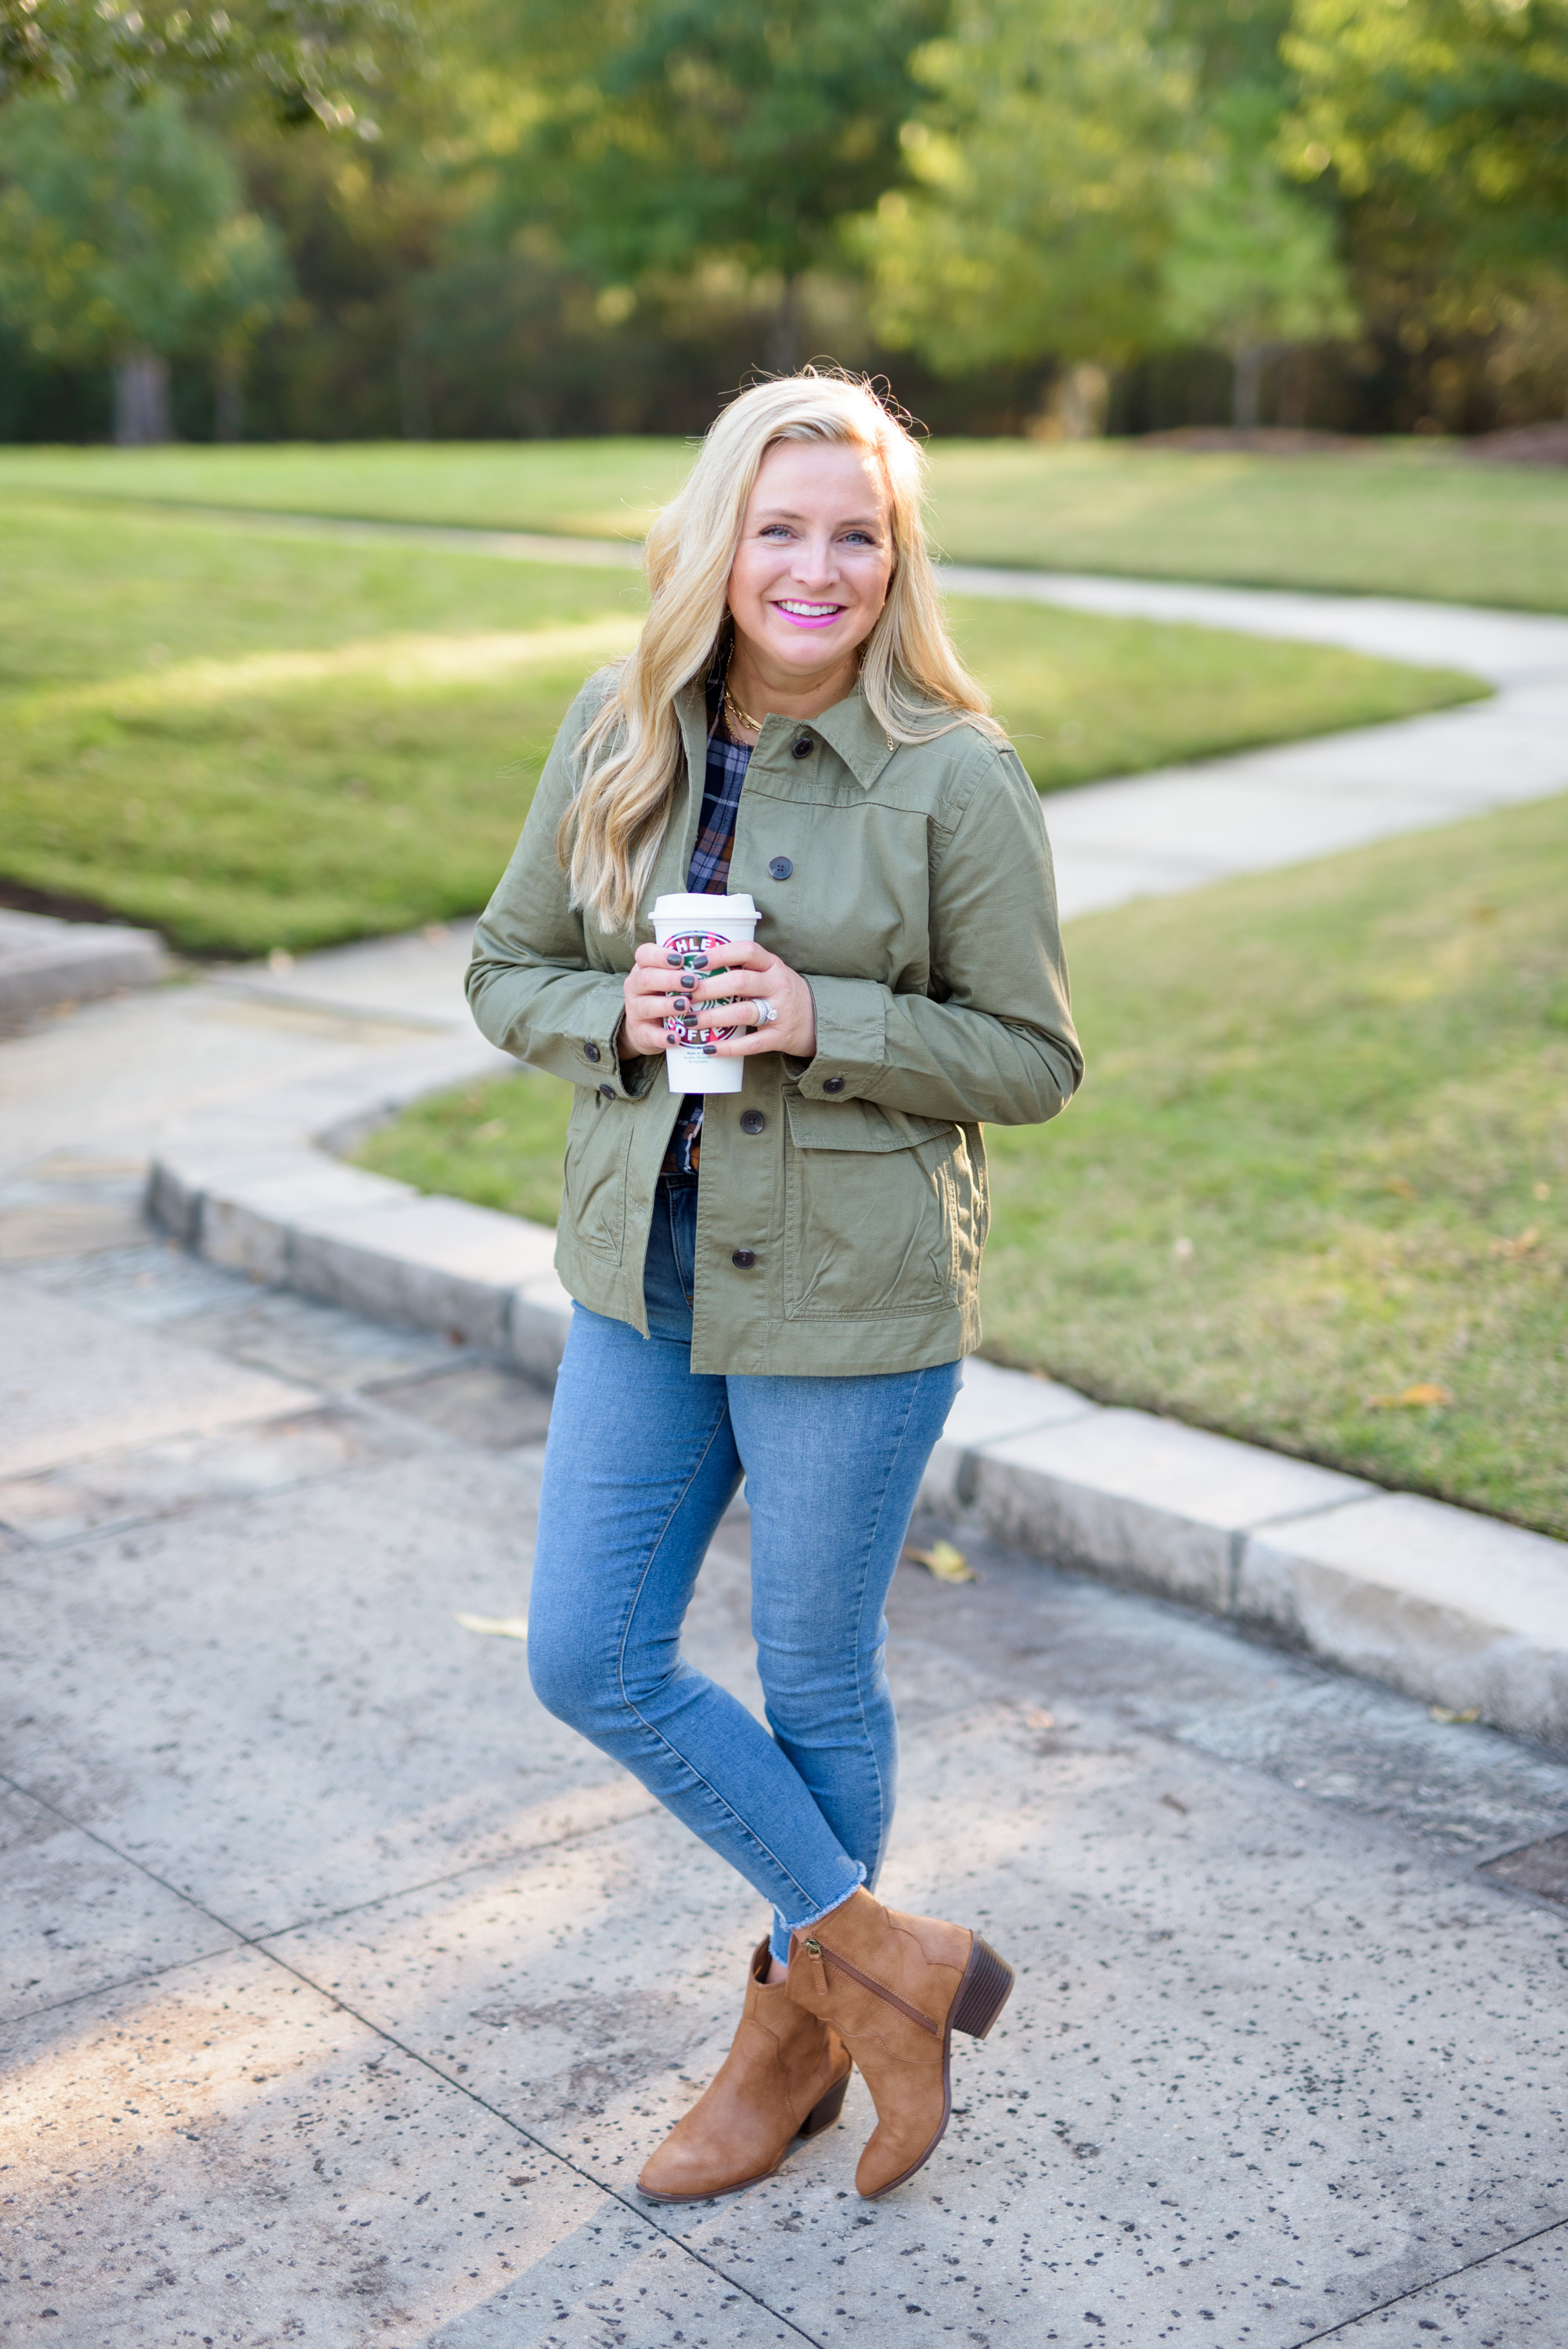 Fall clothing by popular Houston fashion blog, Fancy Ashley: image of a woman wearing a Walmart Free Assembly Women's Micro Ruffled Top, Walmart Free Assembly Women's Fatigue Jacket with Cinching, Walmart Sofia Jeans Rosa Curvy Ripped Hem High Waist Ankle Jean, and Walmart Scoop Women's Willow Western Booties.